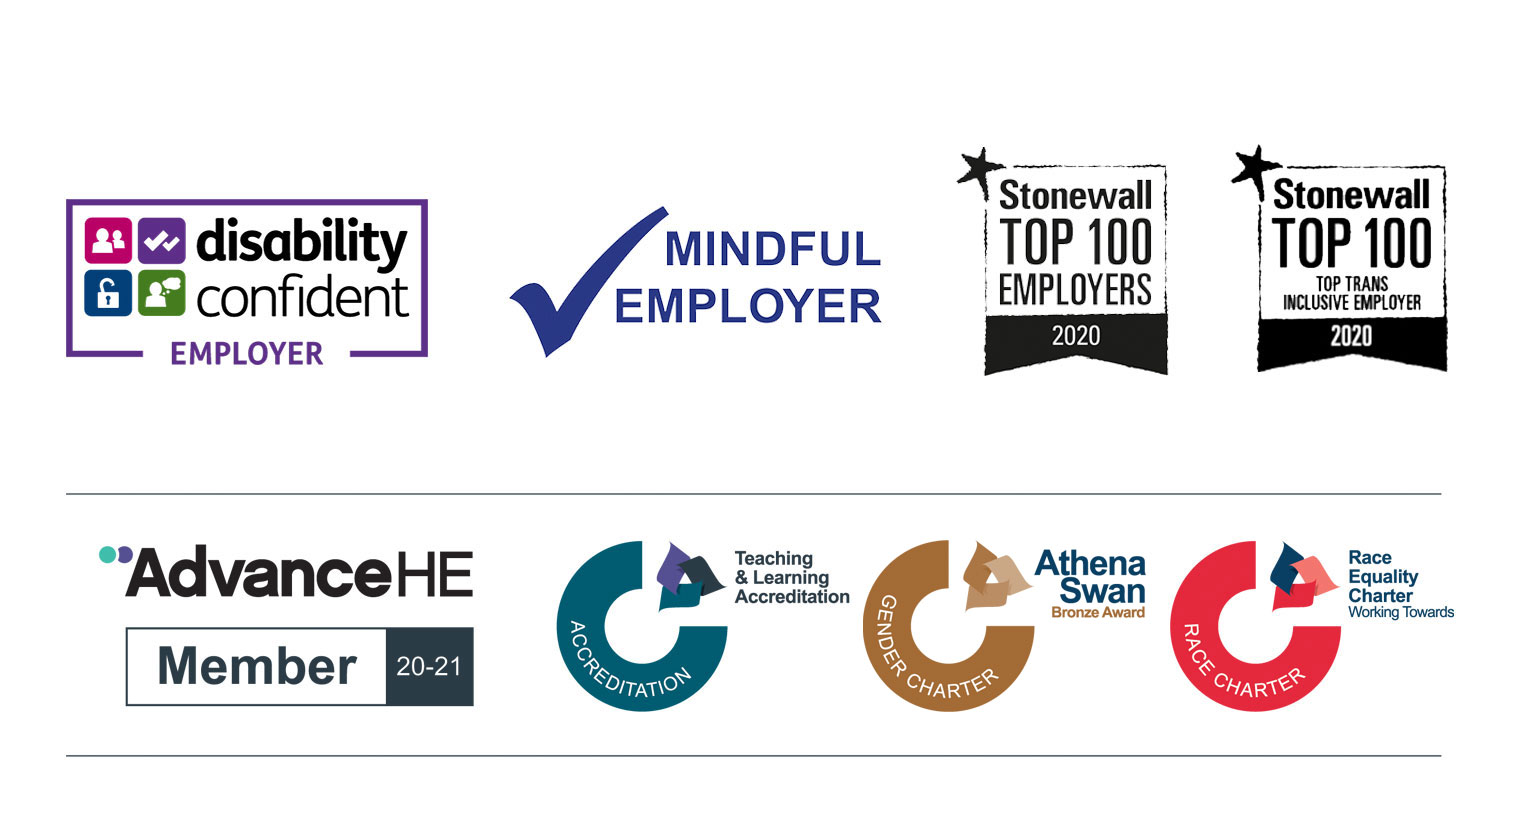 Collection of logos for awards relating to Equality and Diversity